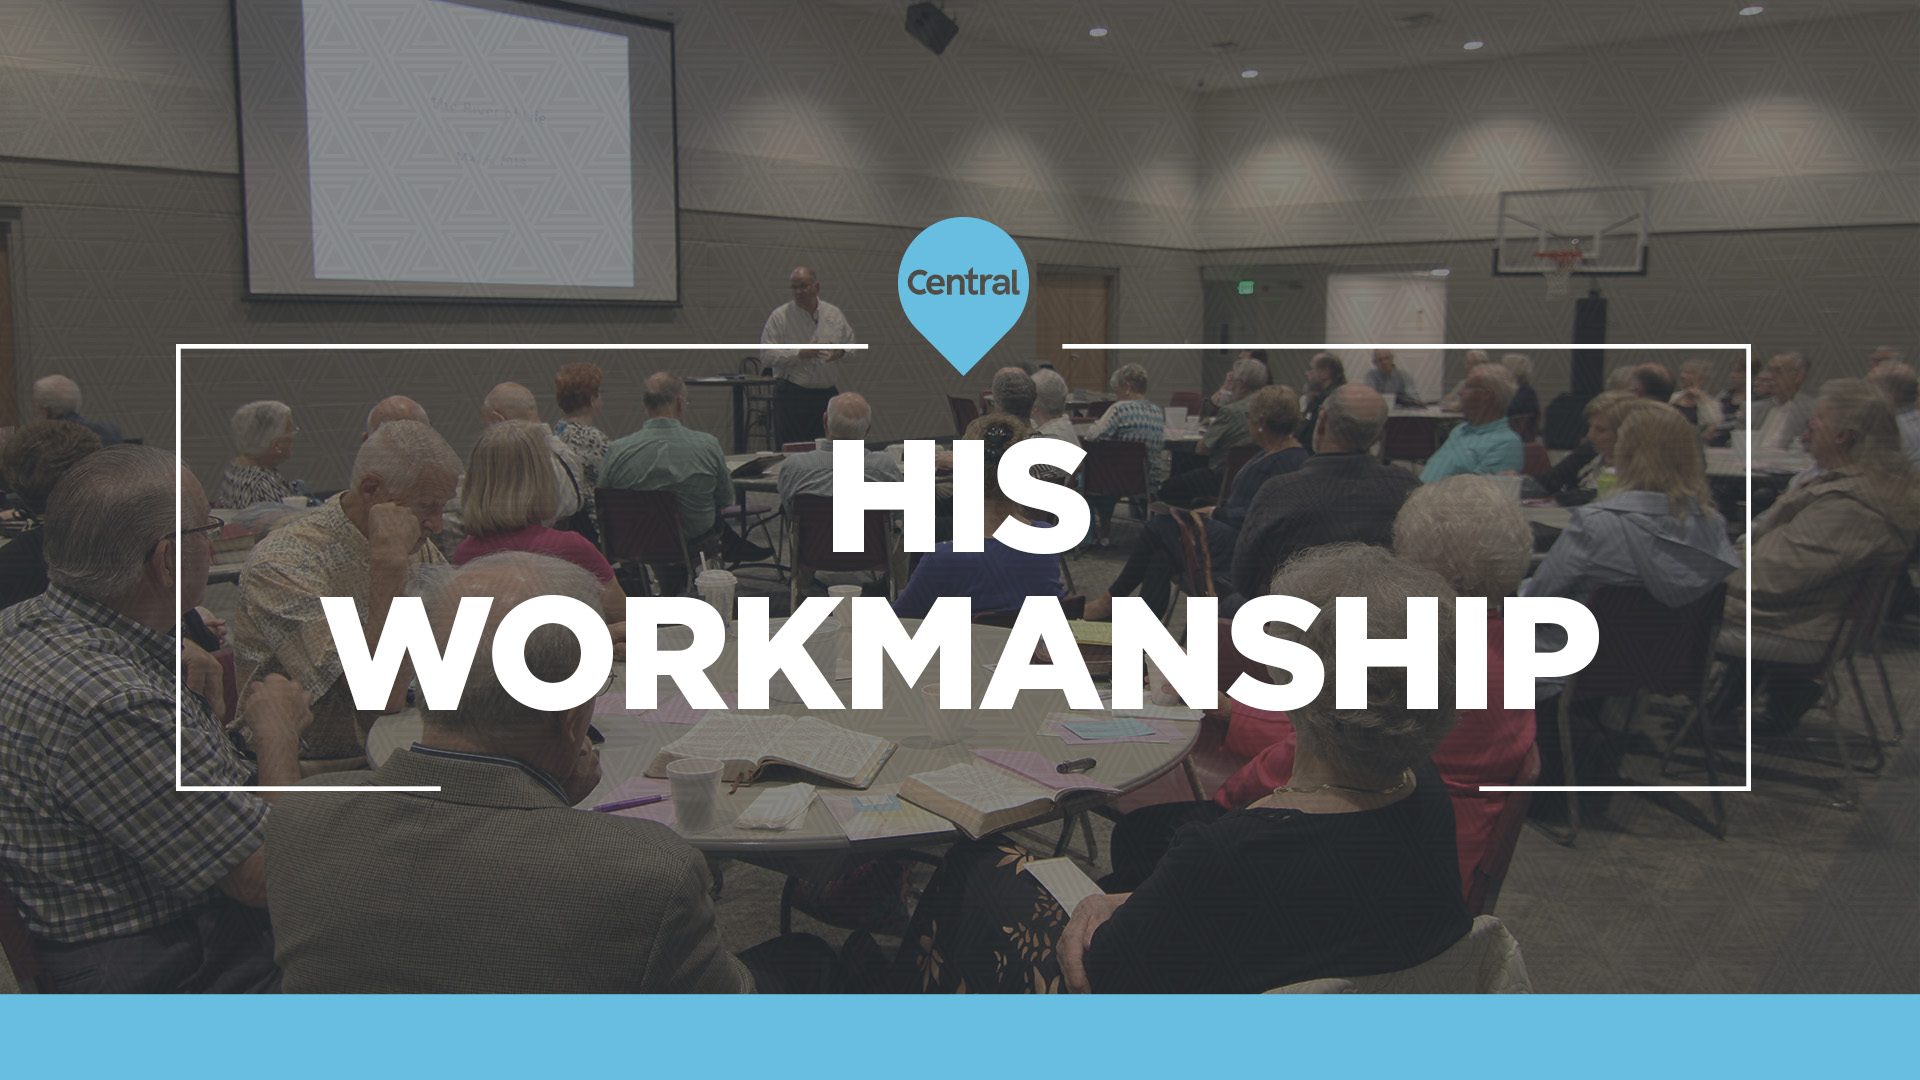 His Workmanship